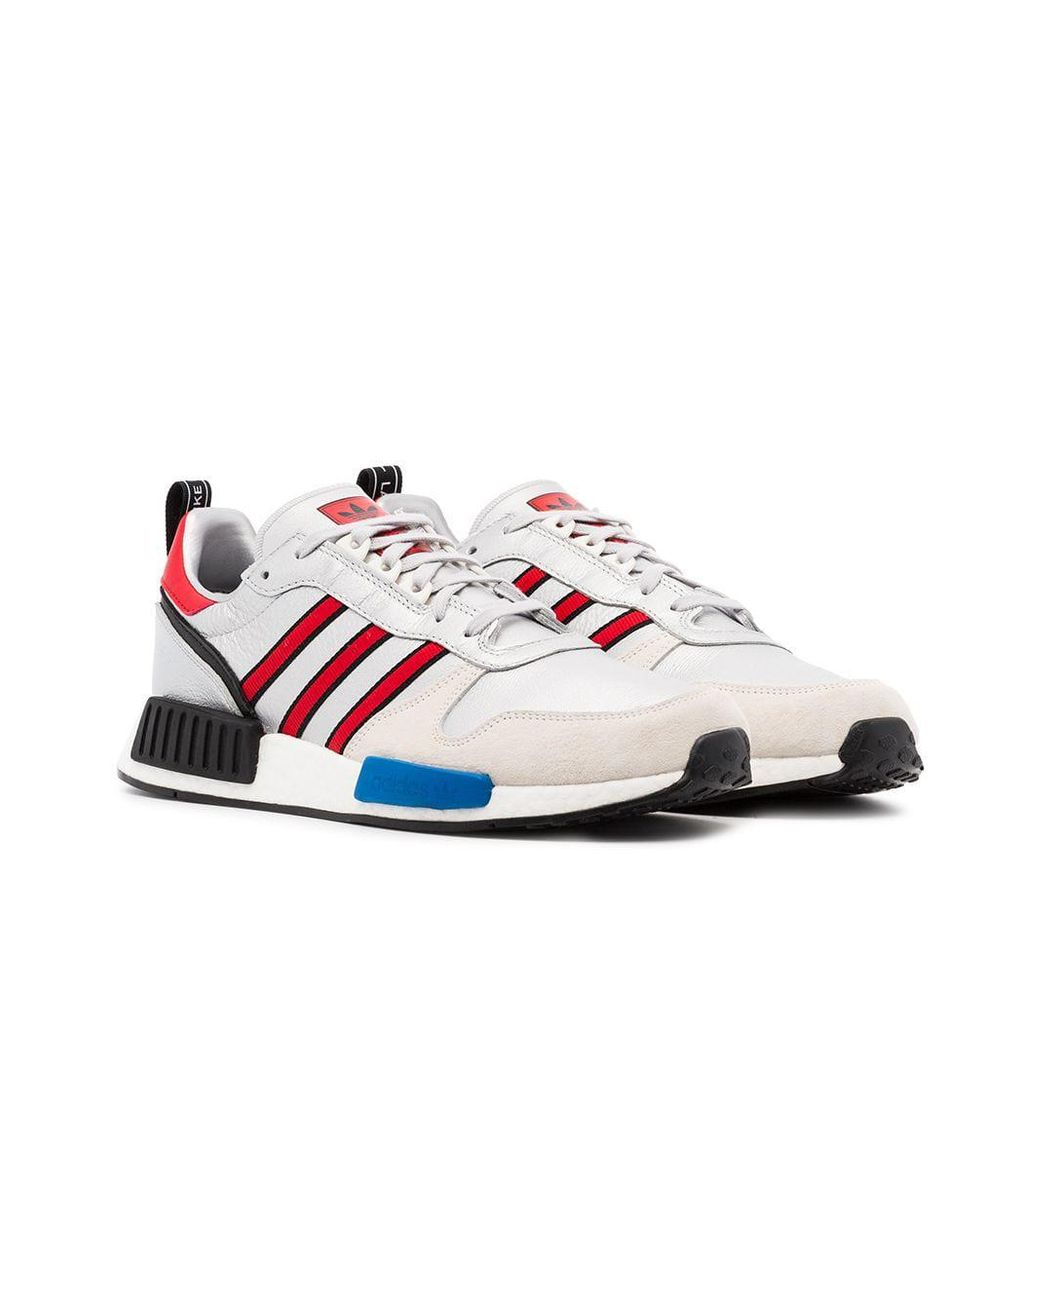 478240adddc8e adidas Never Made Multicoloured Rising Star R1 Leather Sneakers in Metallic  for Men - Lyst